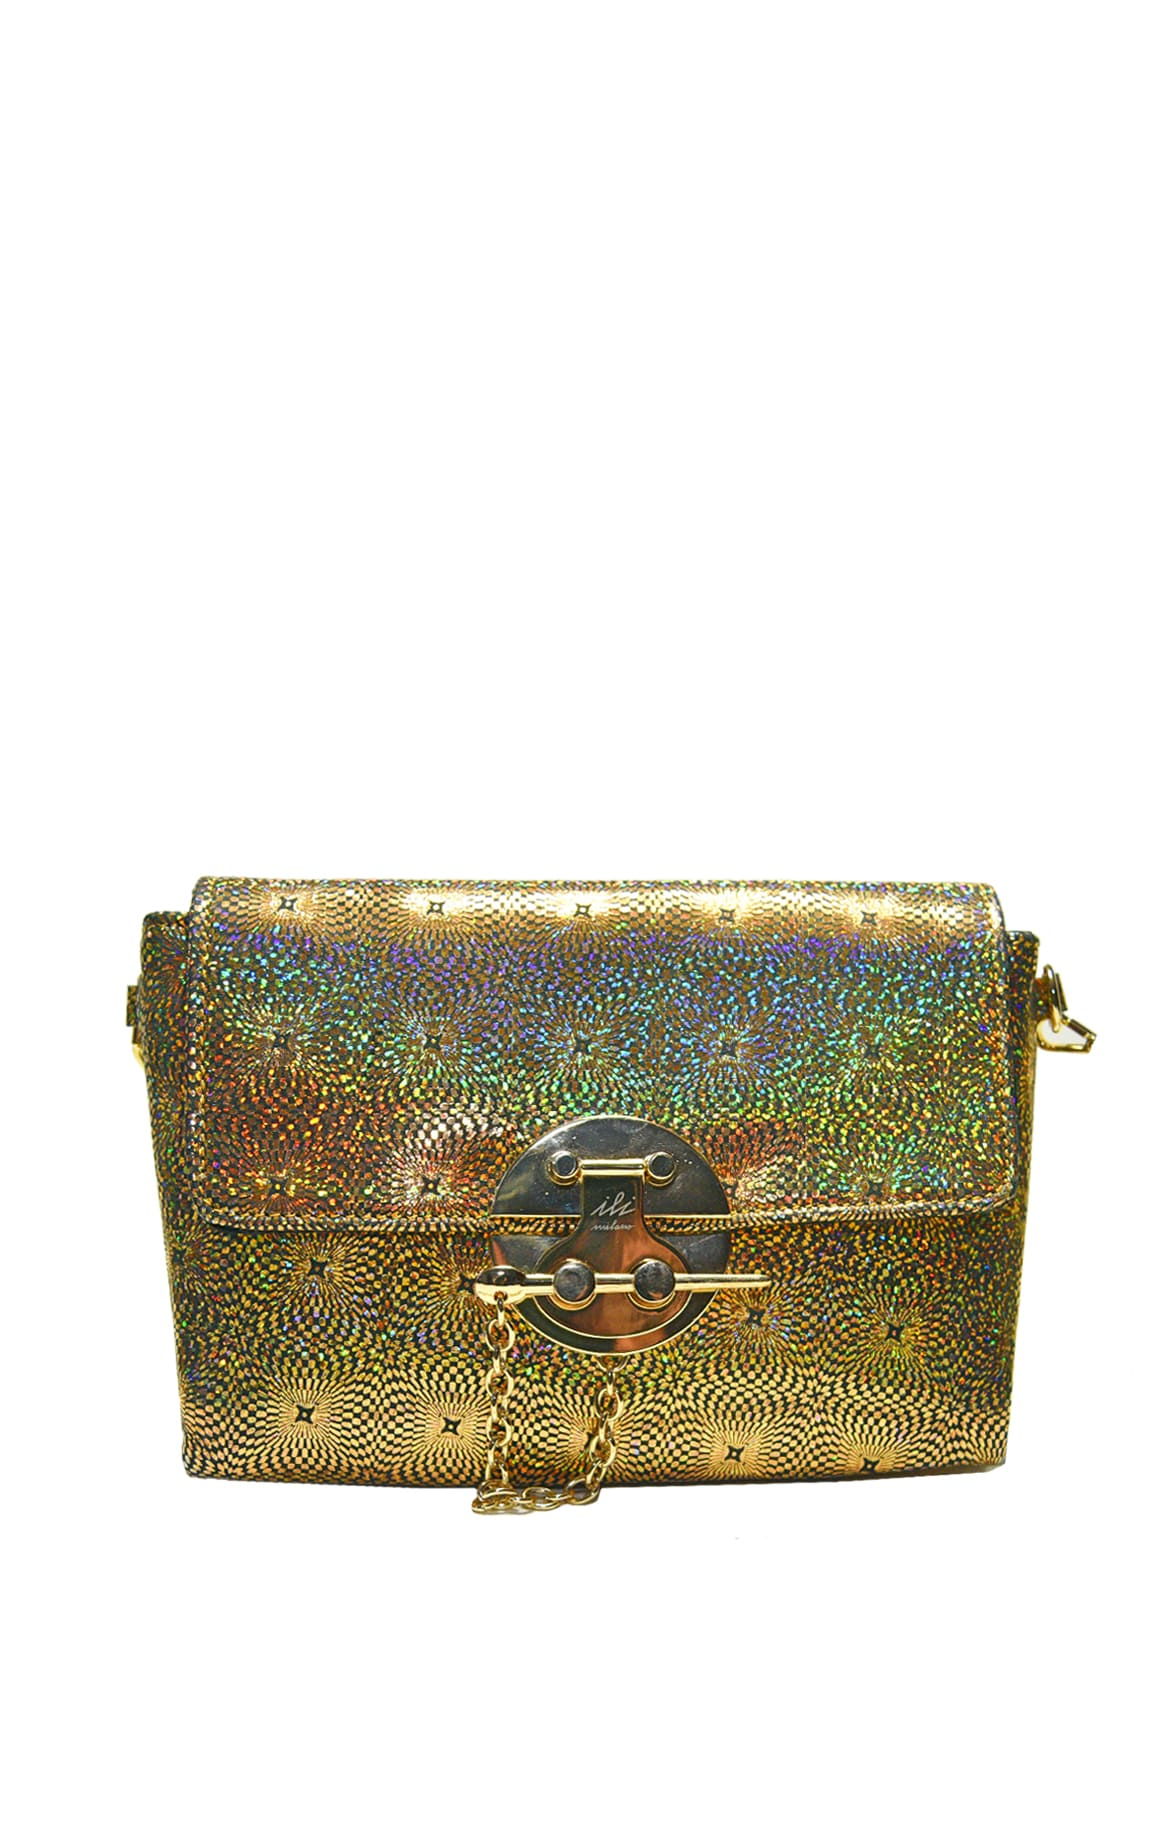 Golden Key Small Bag